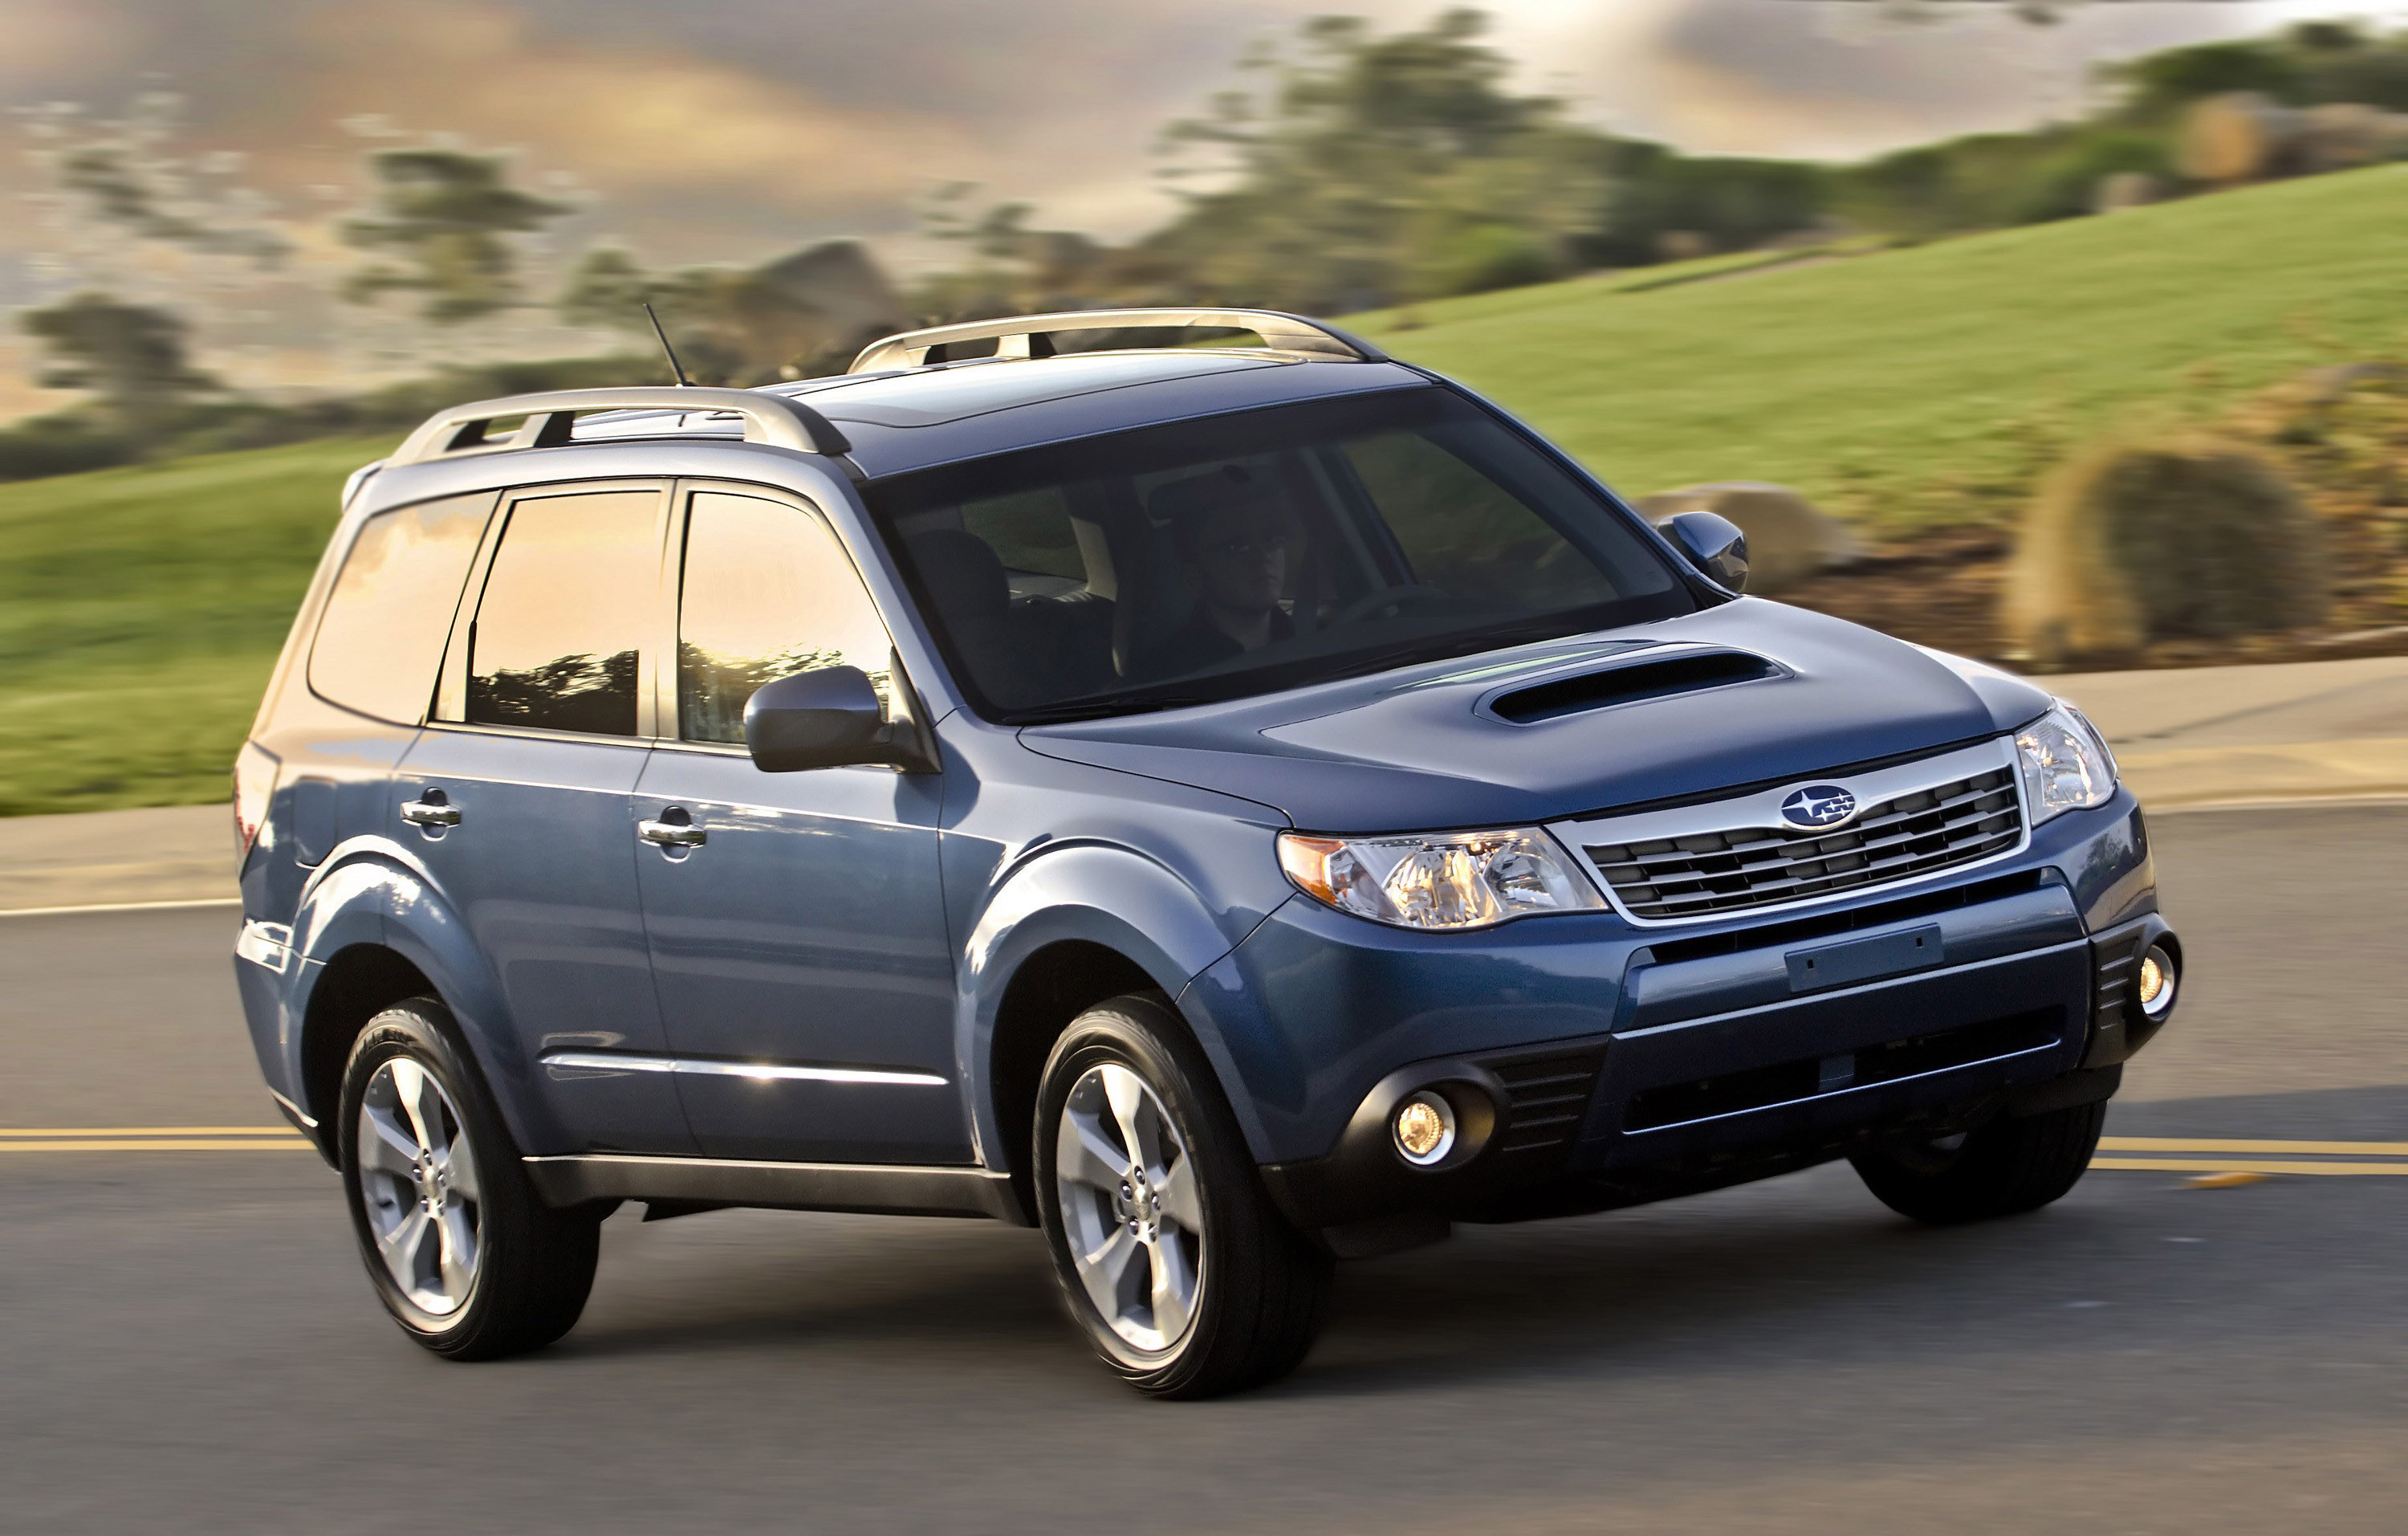 Great Description About 2010 forester Xt with Breathtaking G...<a href=